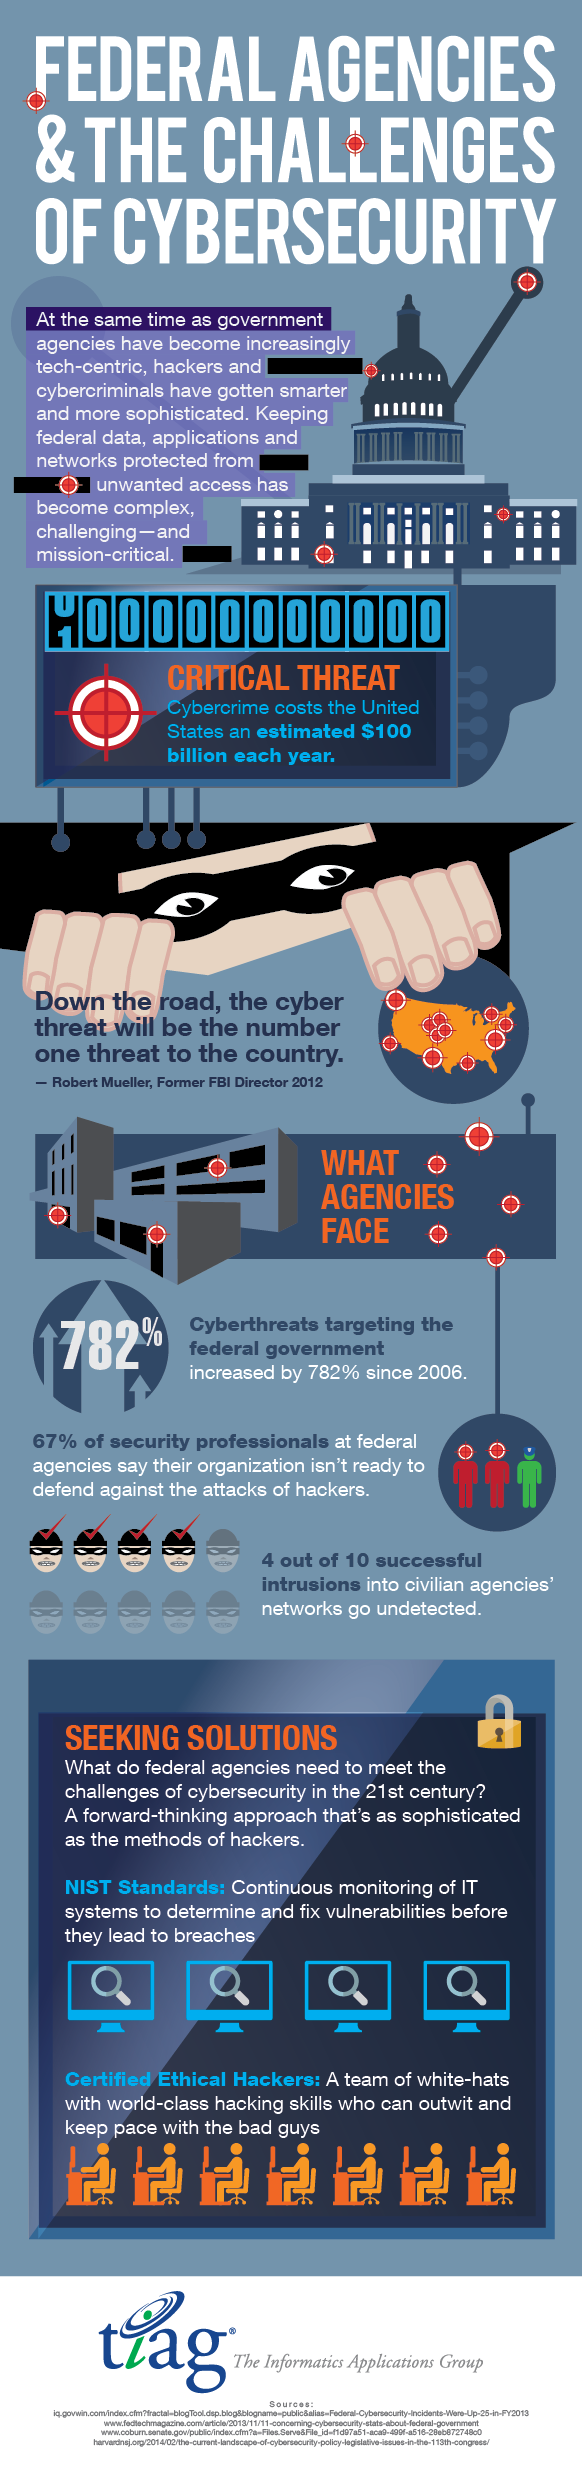 Infographic: Federal agencies and the challenges of cybersecurity